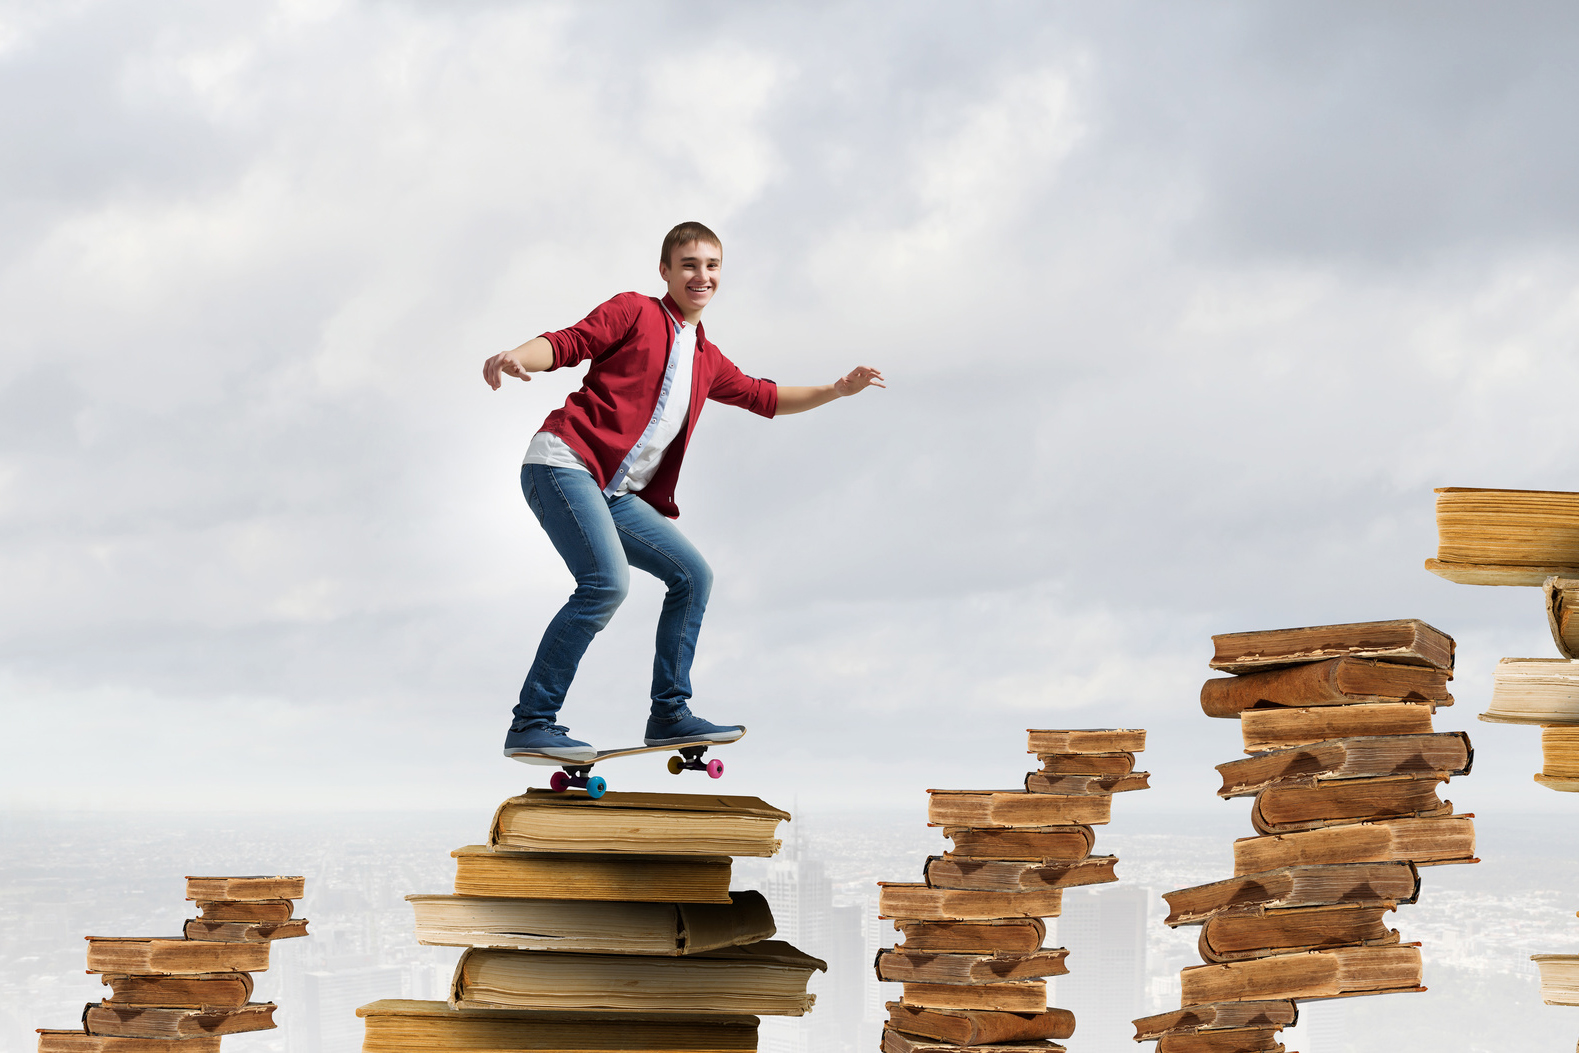 Handsome teenager acive boy riding skateboard on books